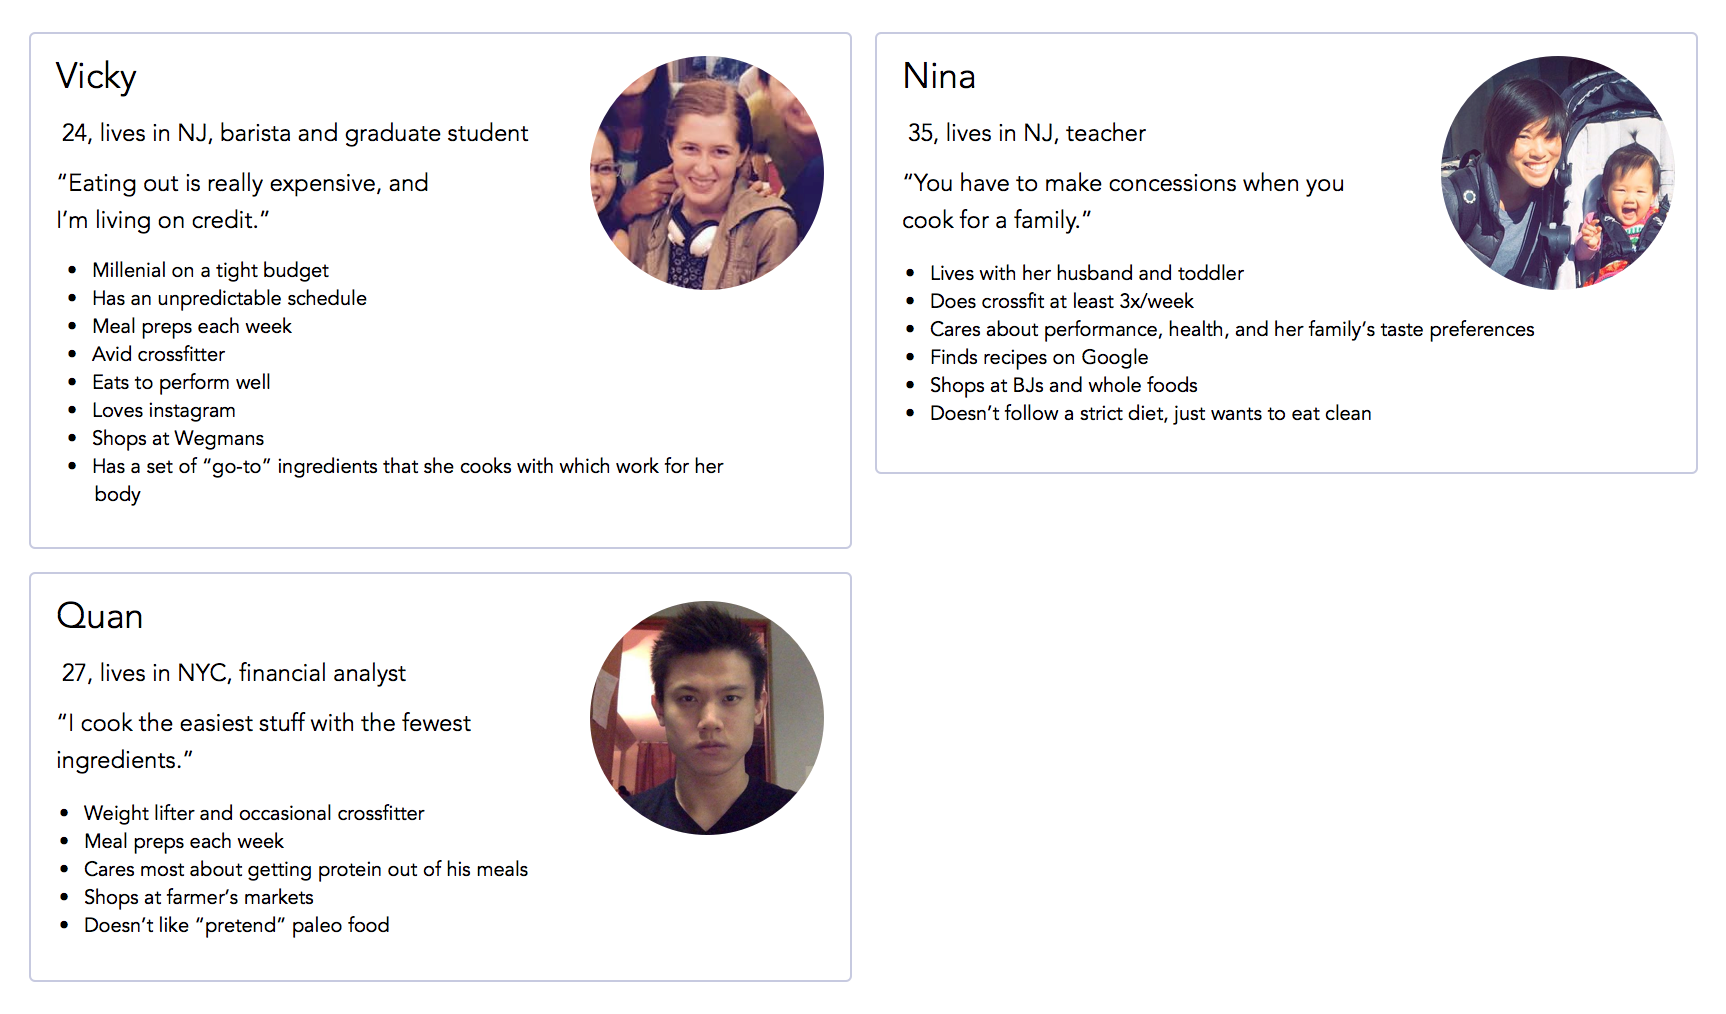 3 personas, developed from user interviews